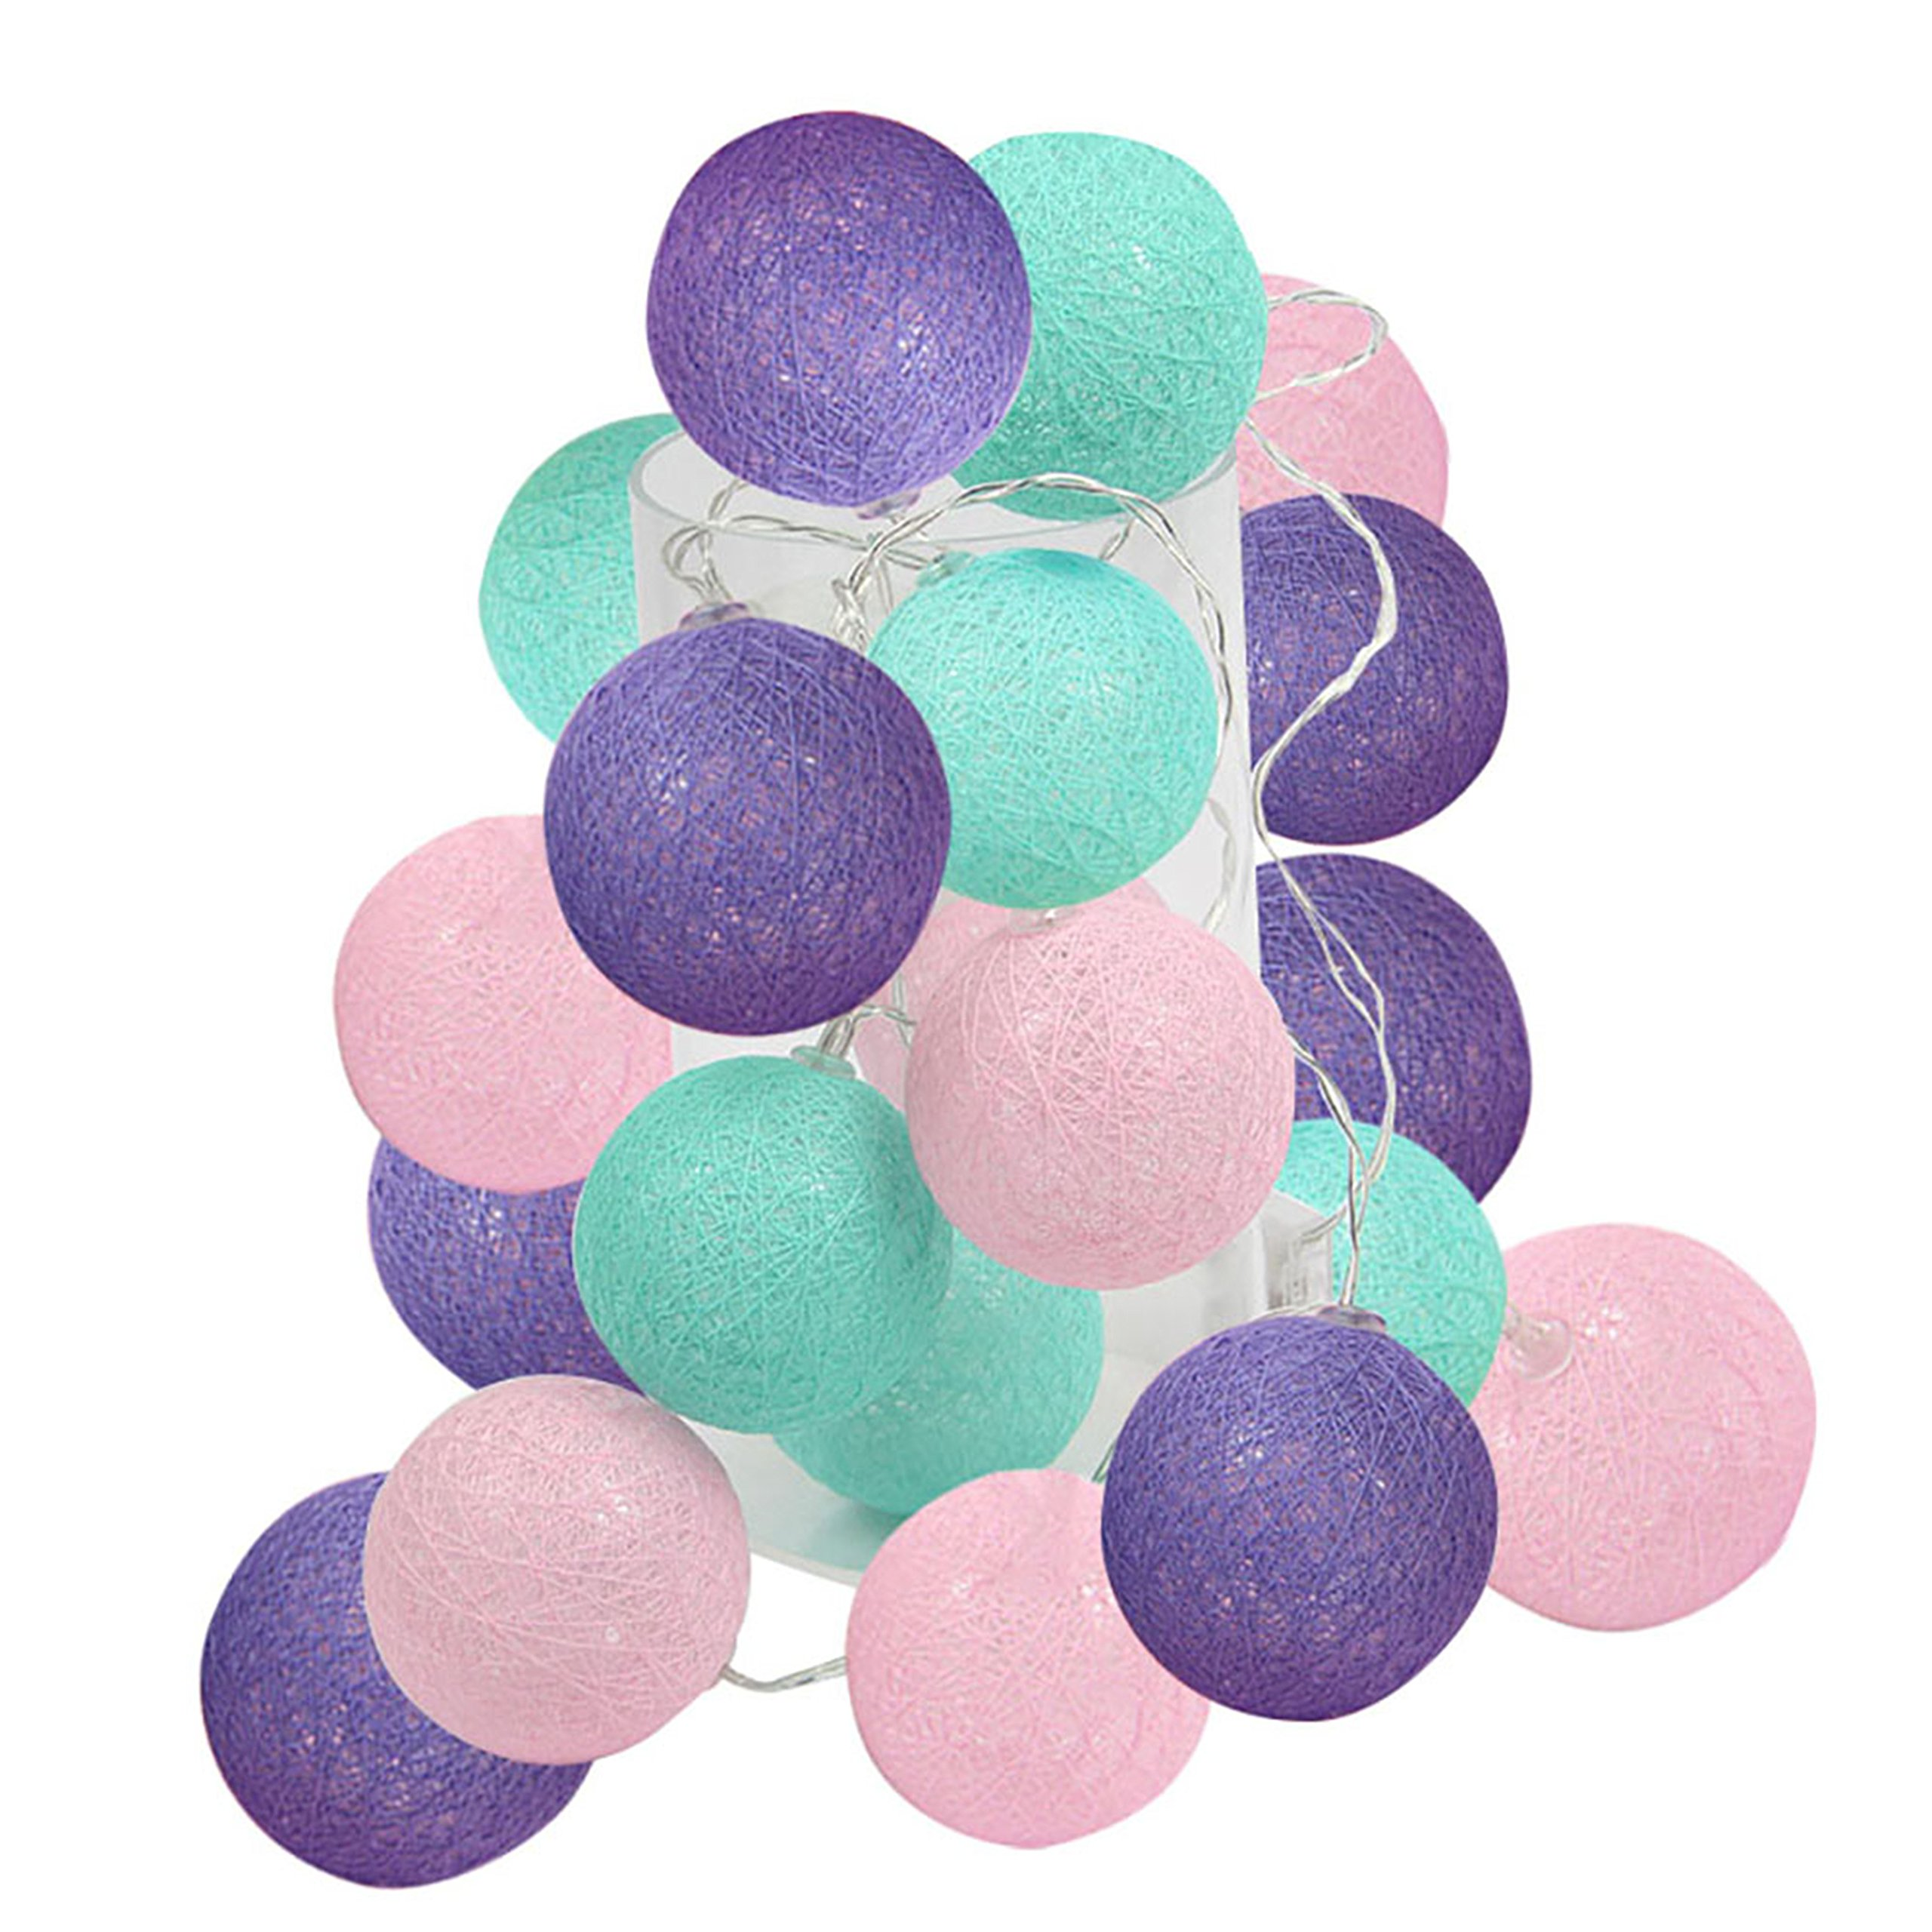 2.5m 20 LED Under The Sea Party Supplies/Mermaid Decor Mint Green Pink Purple Cotton Balls String Lights Battery Operated Christmas LED Garland Party Decorative Lamp for Wedding Baby Shower Decor